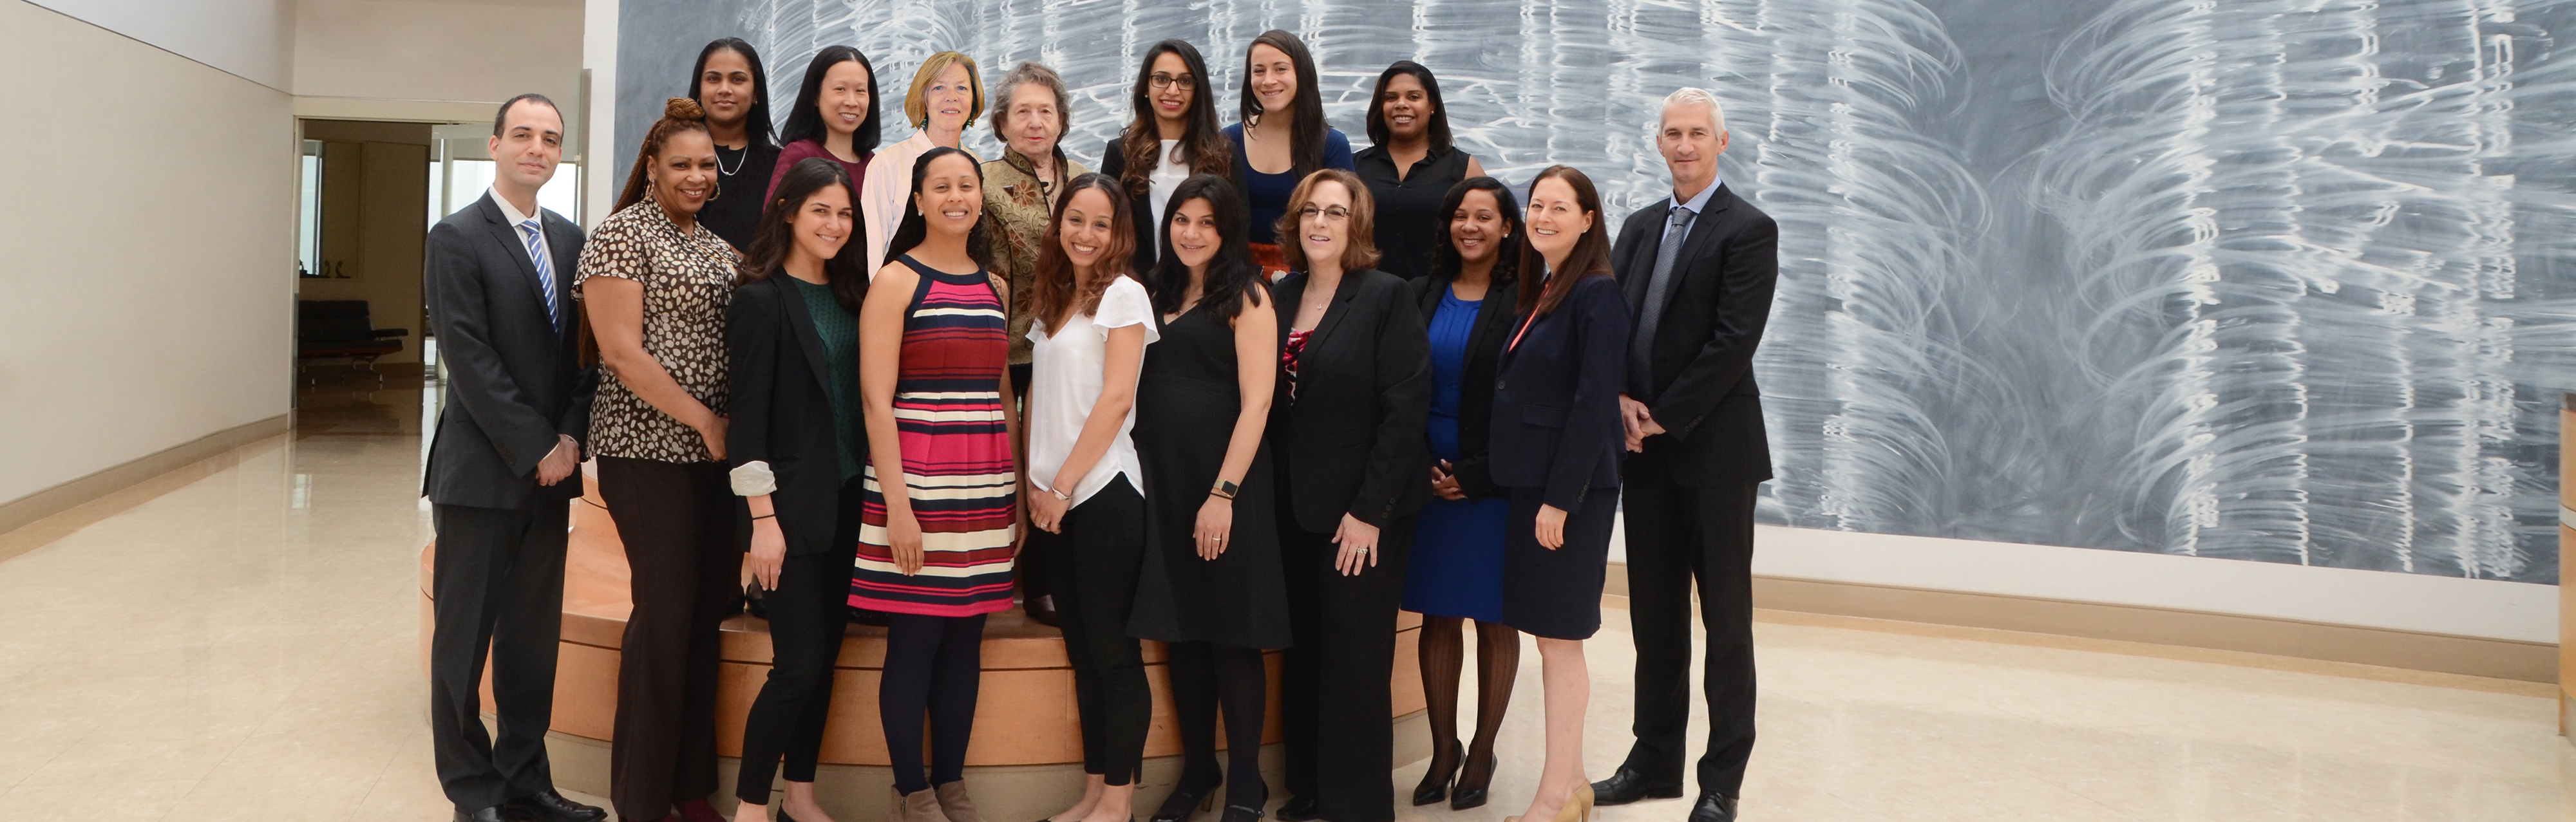 Group photo of Weill Cornell Medicine's GI Metabolic and Bariatric Surgery team